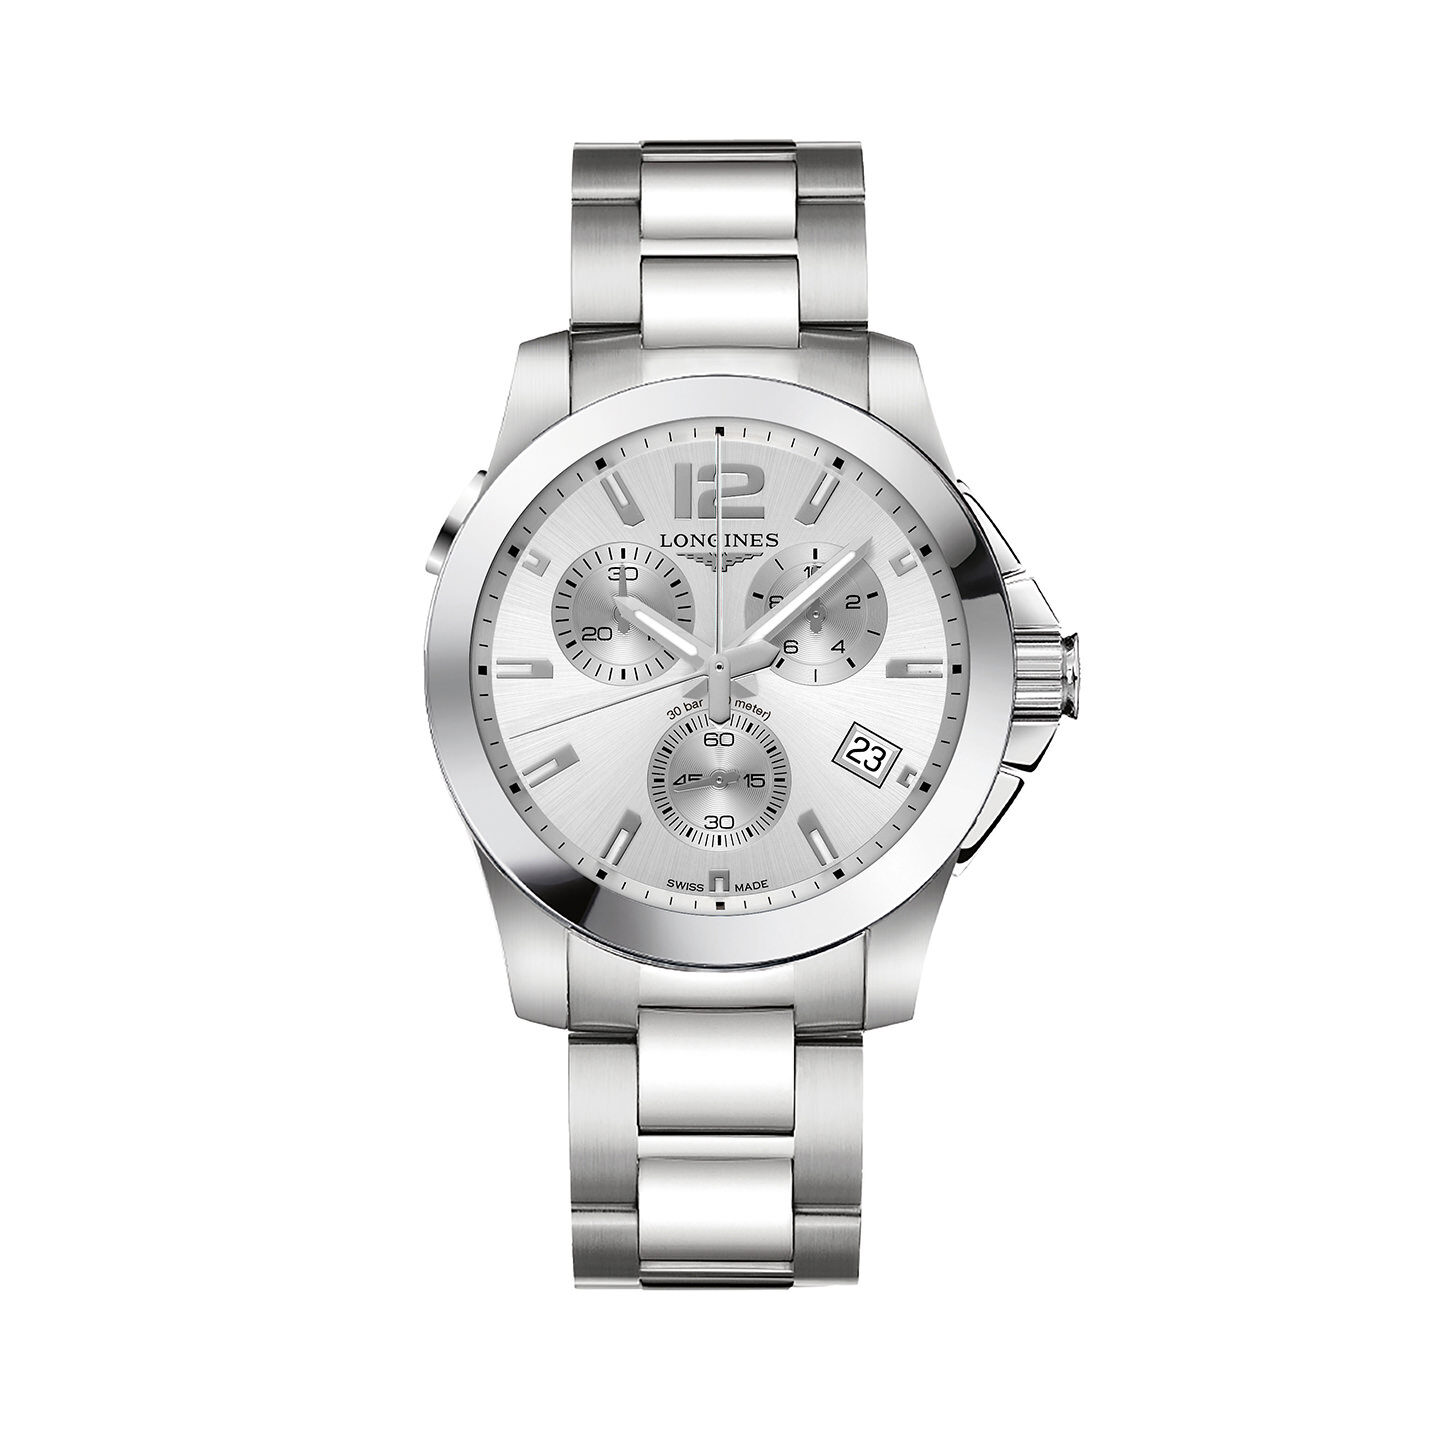 Longines Conquest Collection – Stainless Steel Chronograph